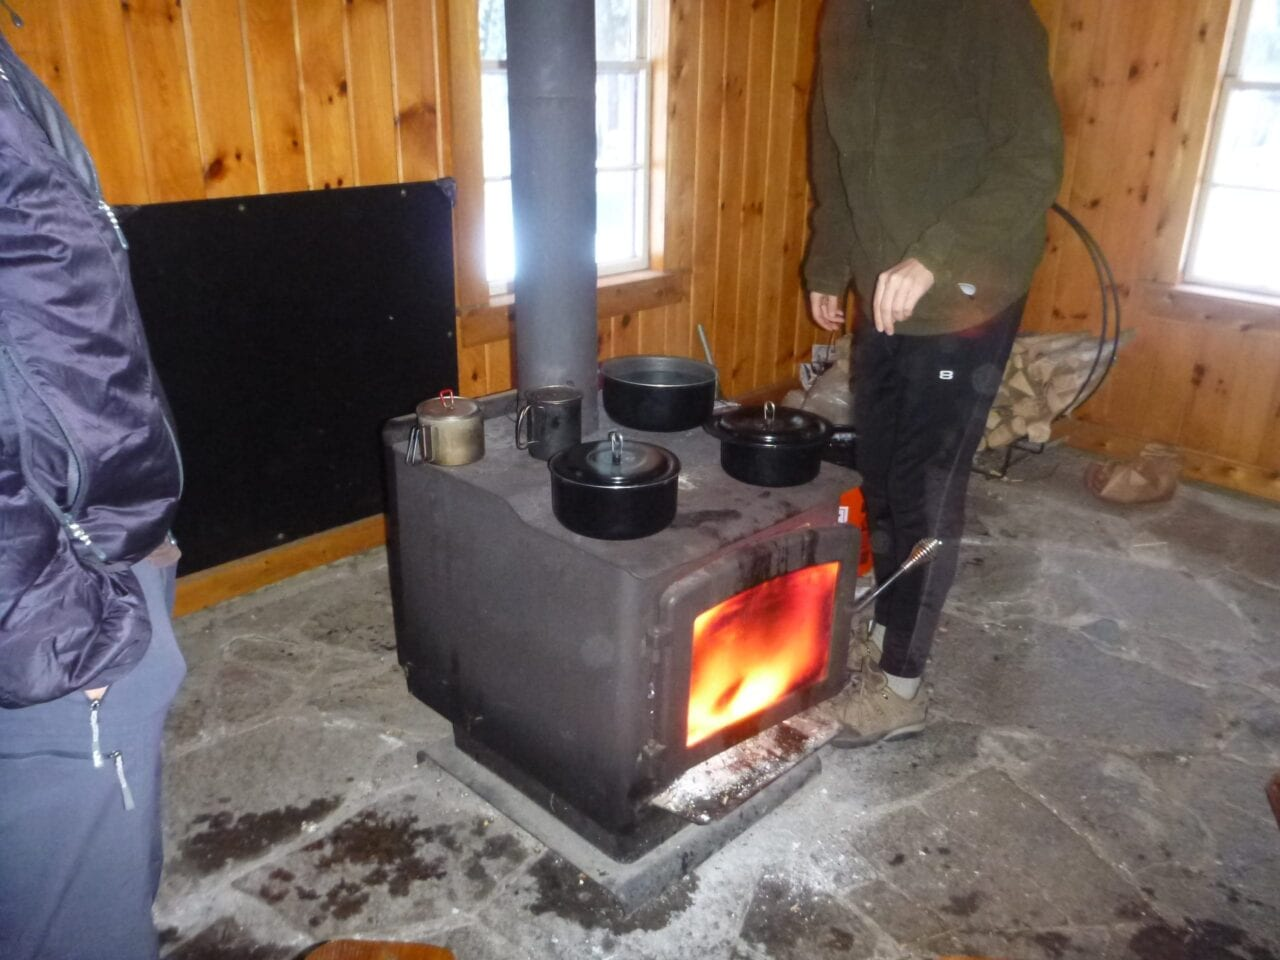 A couple people warm themselves next to a woodstove.